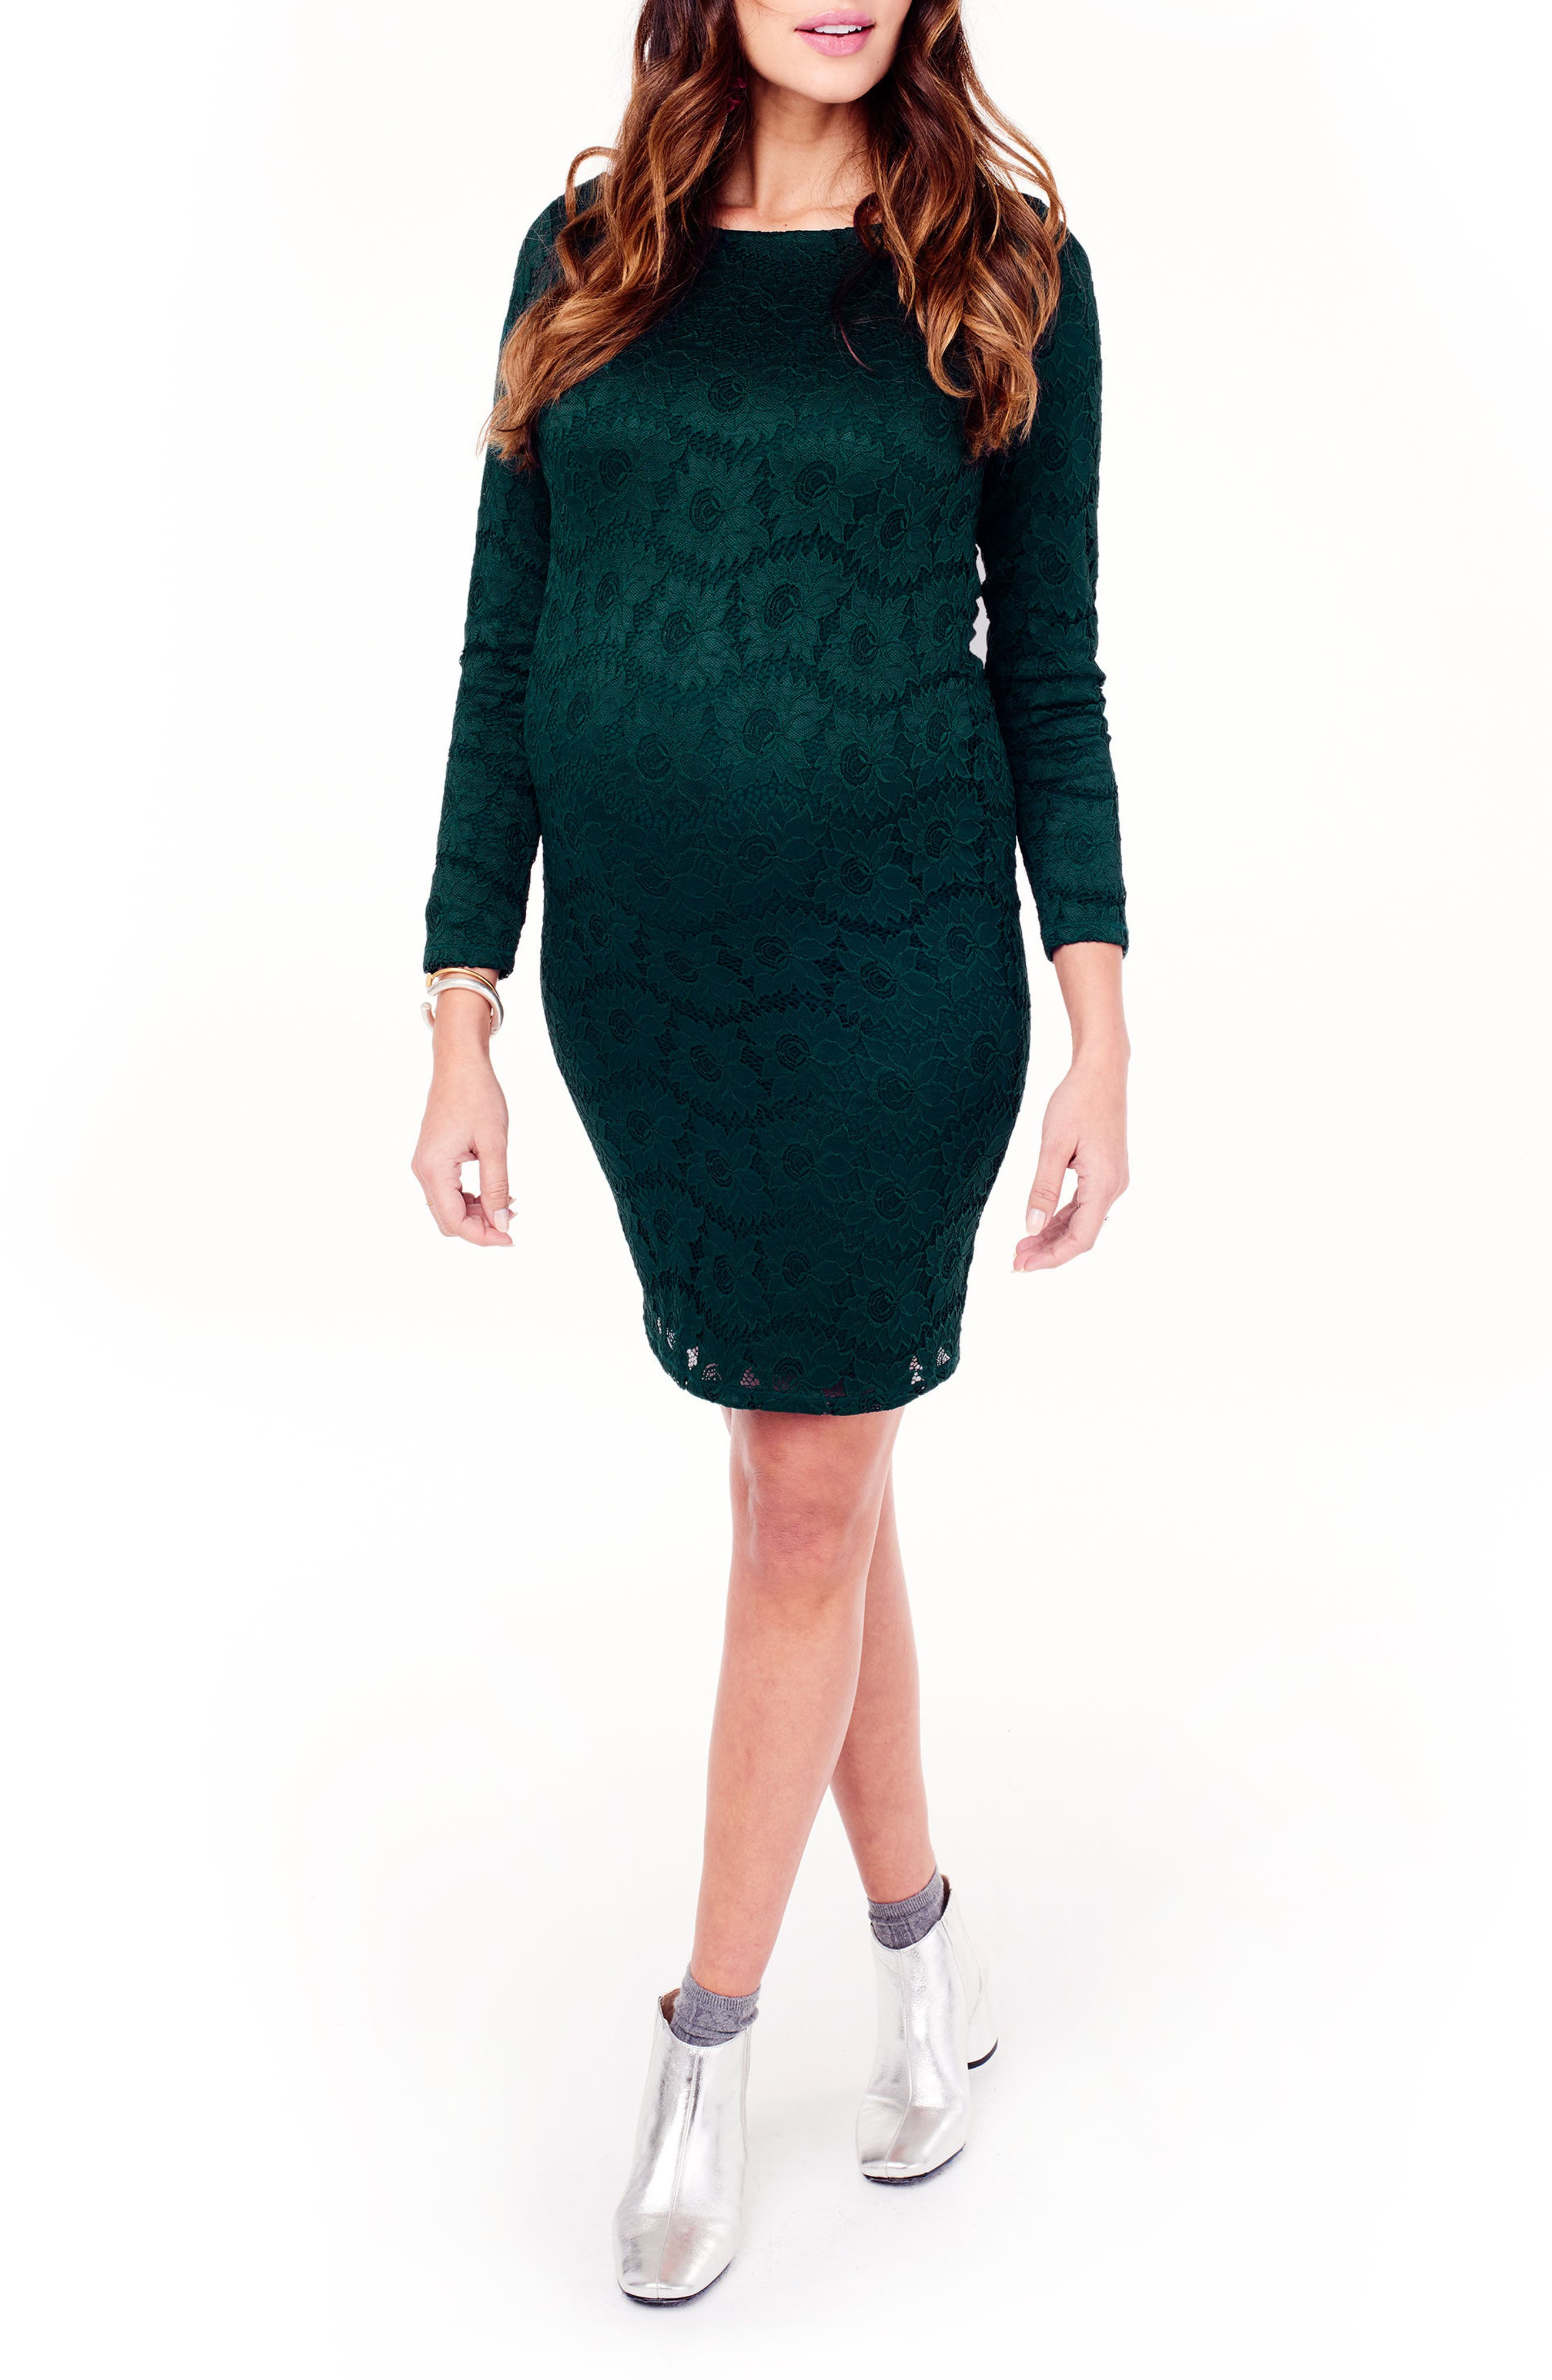 Ingrid & Isabel Lace Maternity Dress,                         Main,                         color, Evergreen